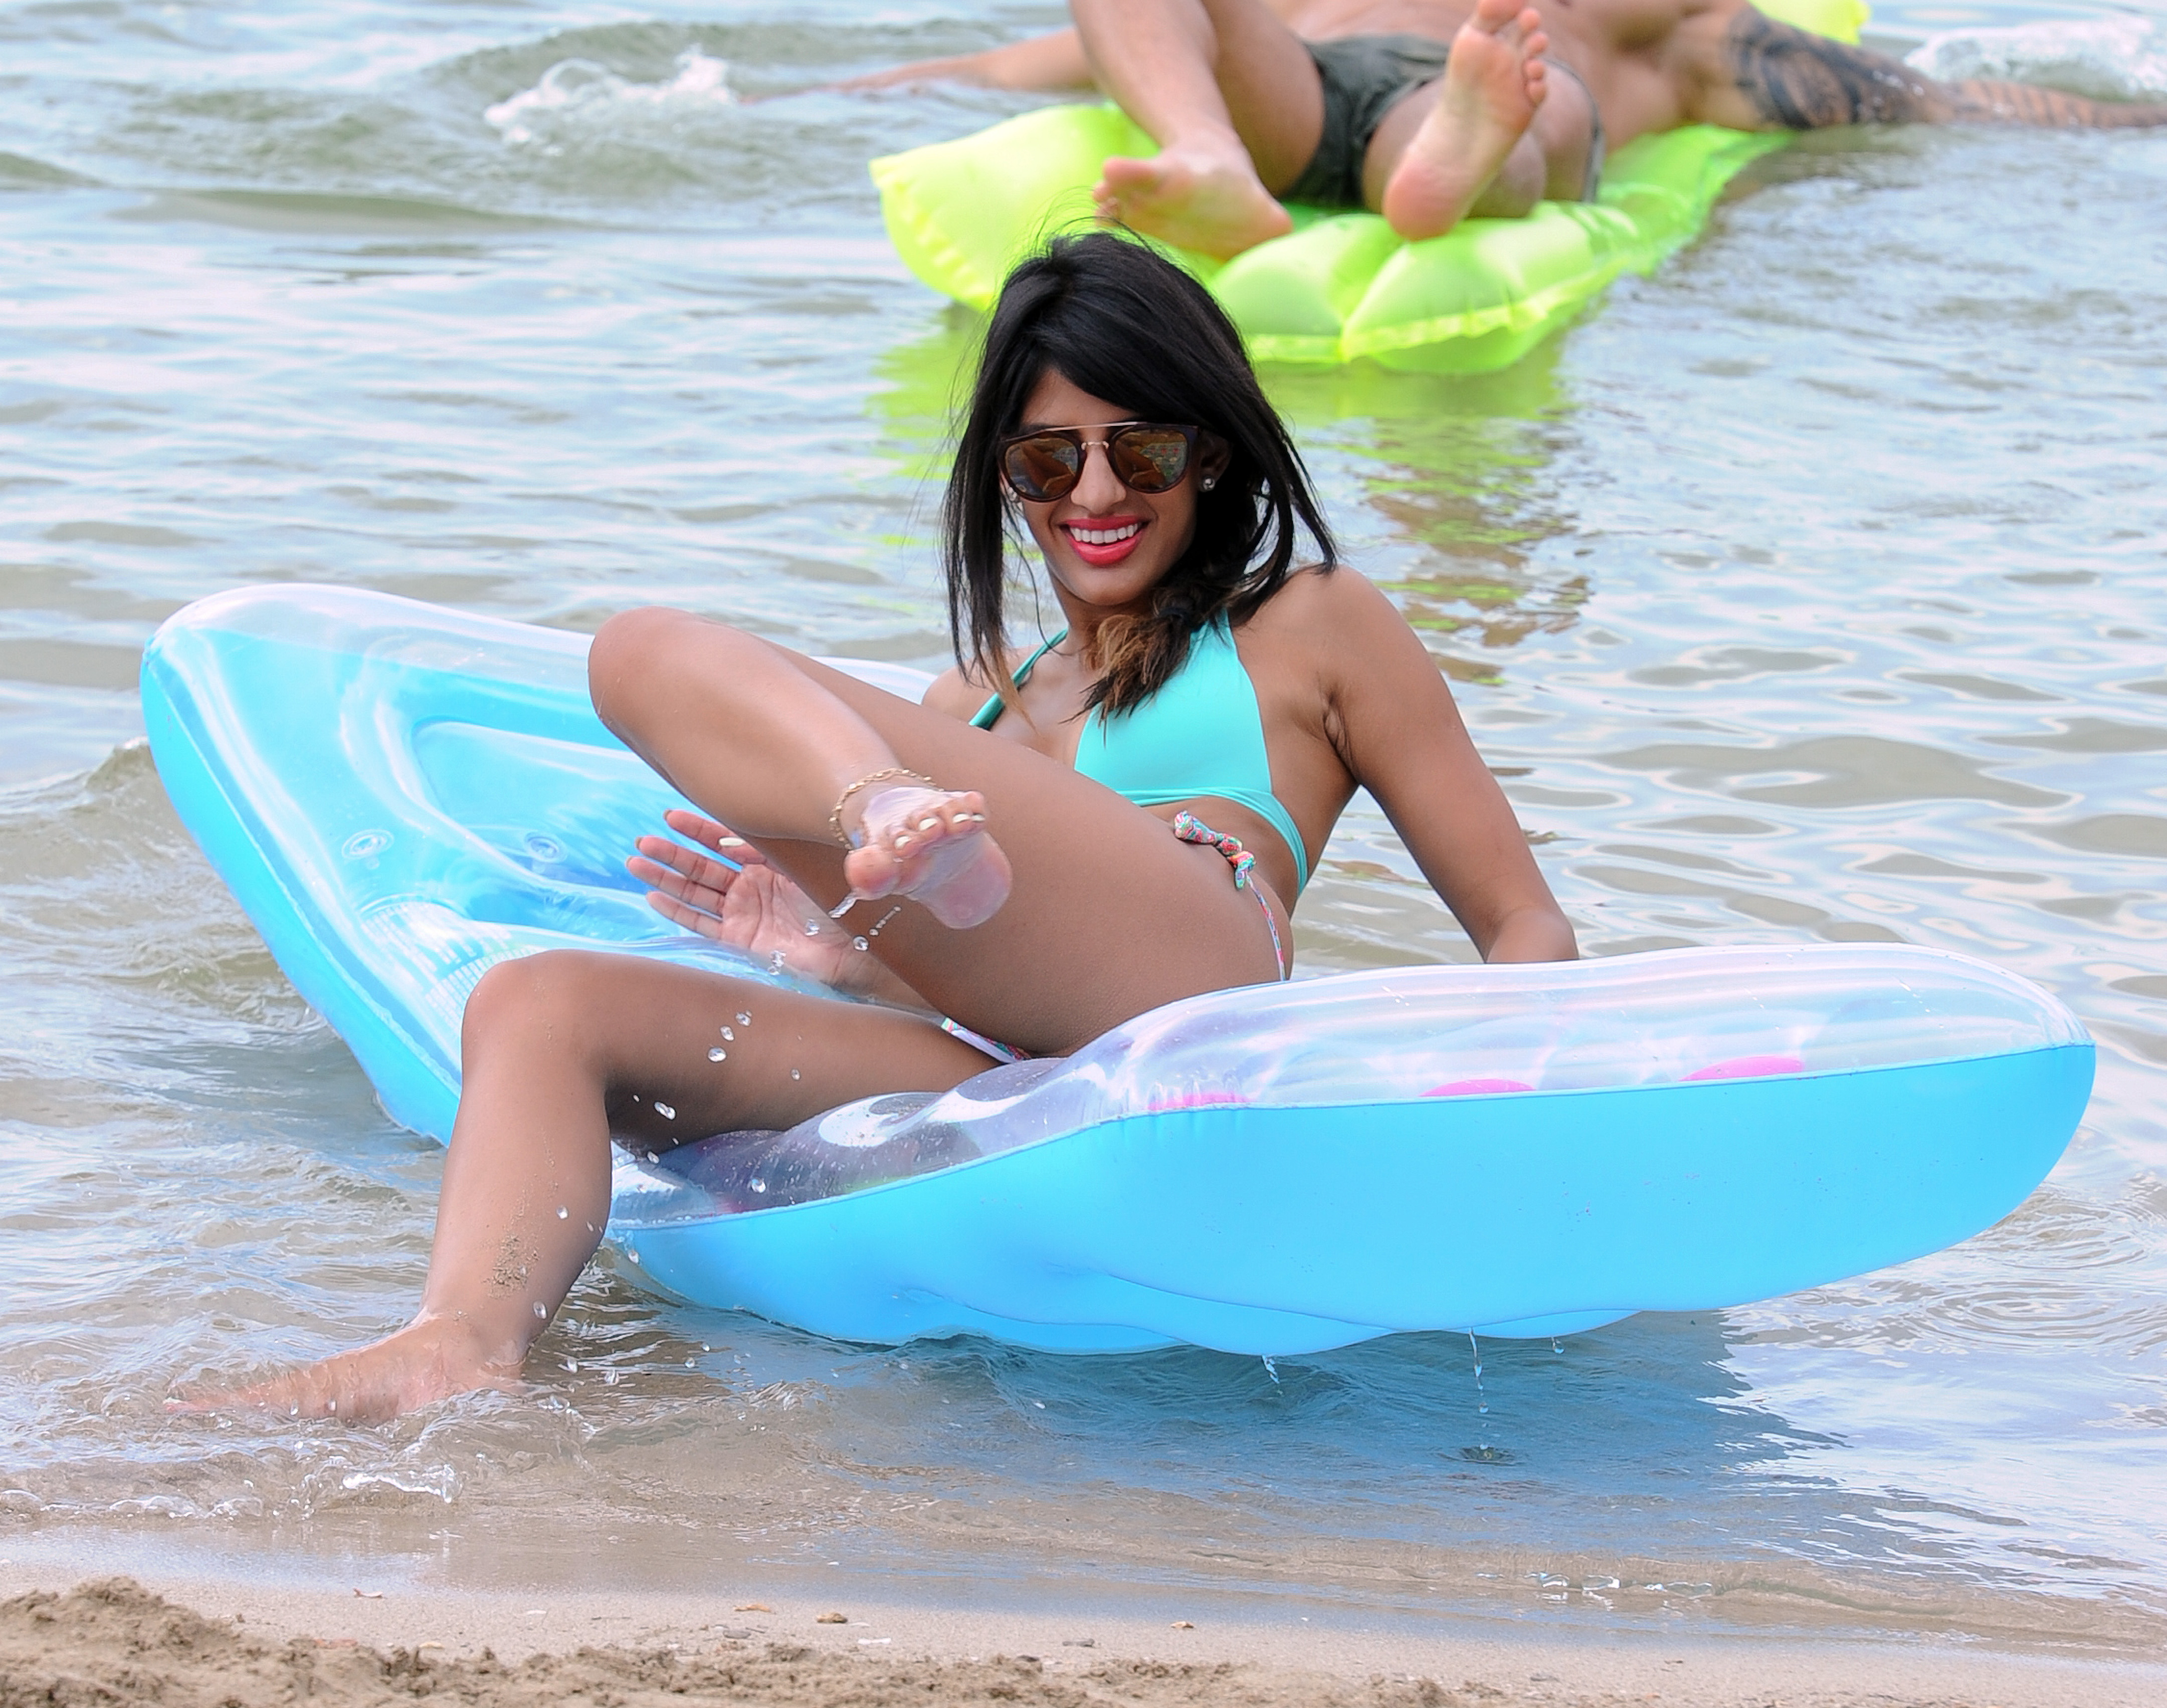 jasmin-walia-wearing-a-bikini-on-the-beach-02